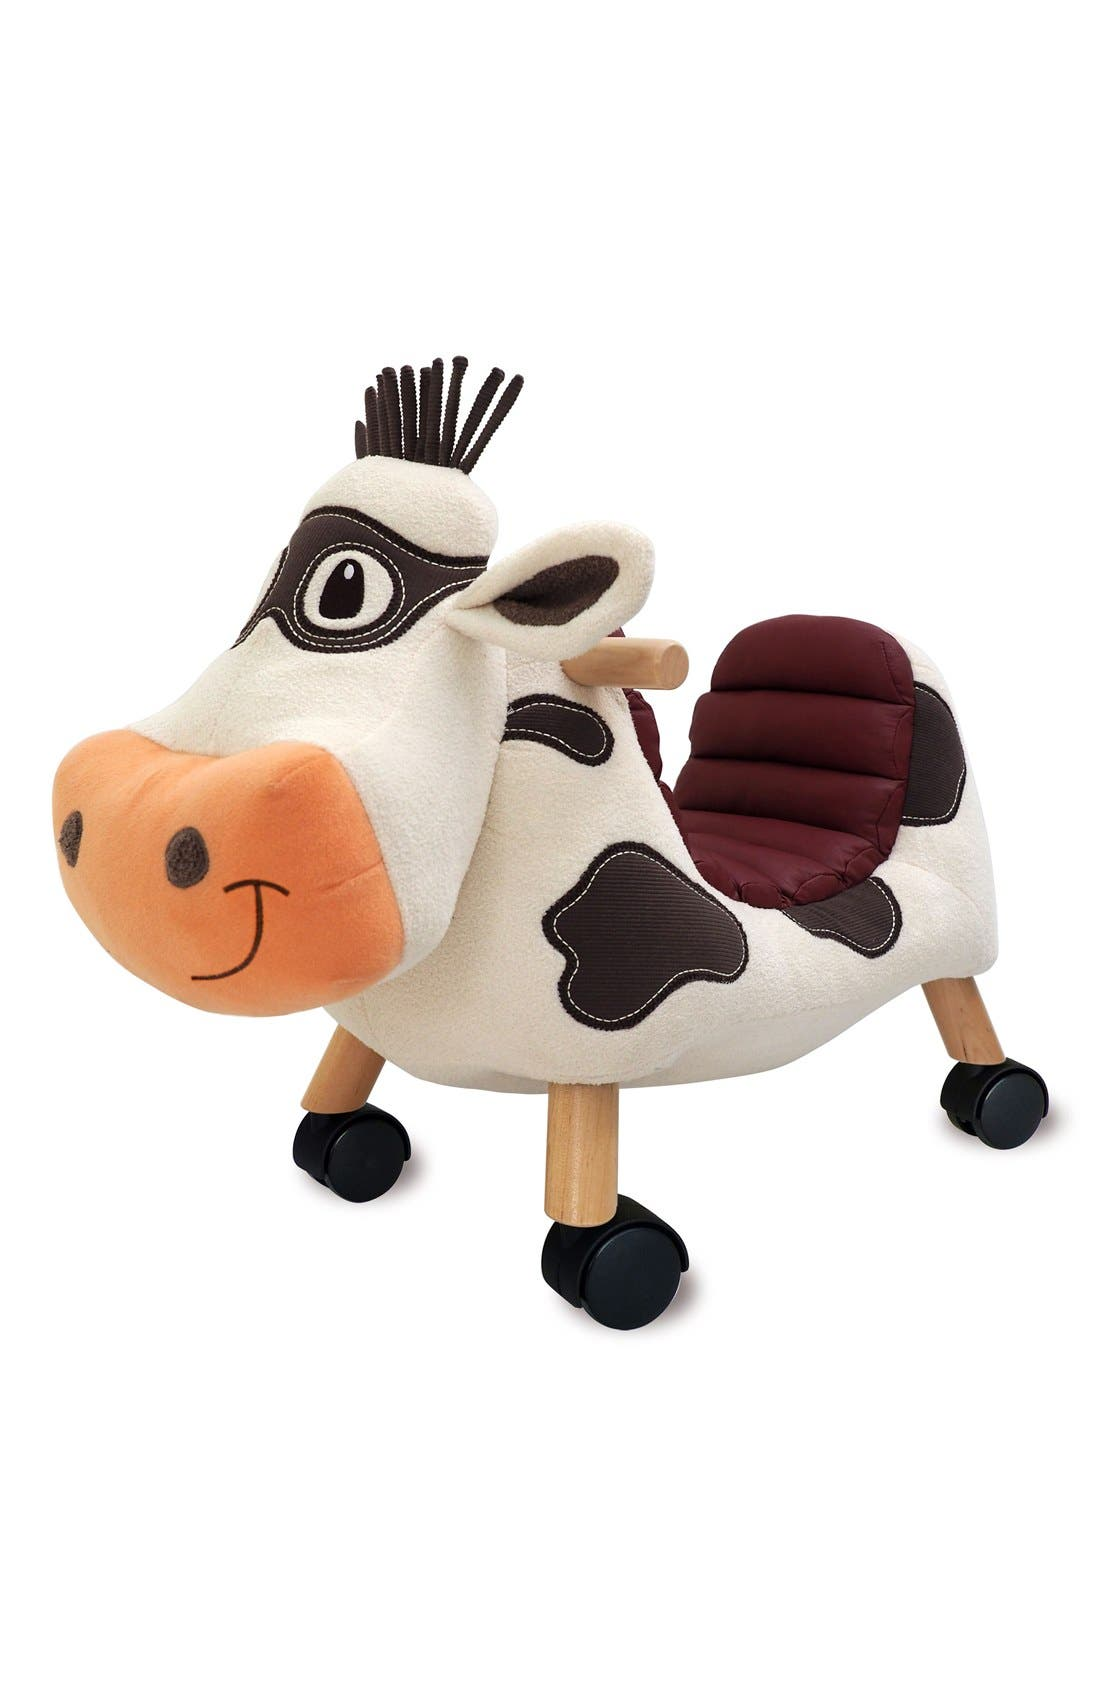 Moobert Ride-On Toy,                             Main thumbnail 1, color,                             Brown